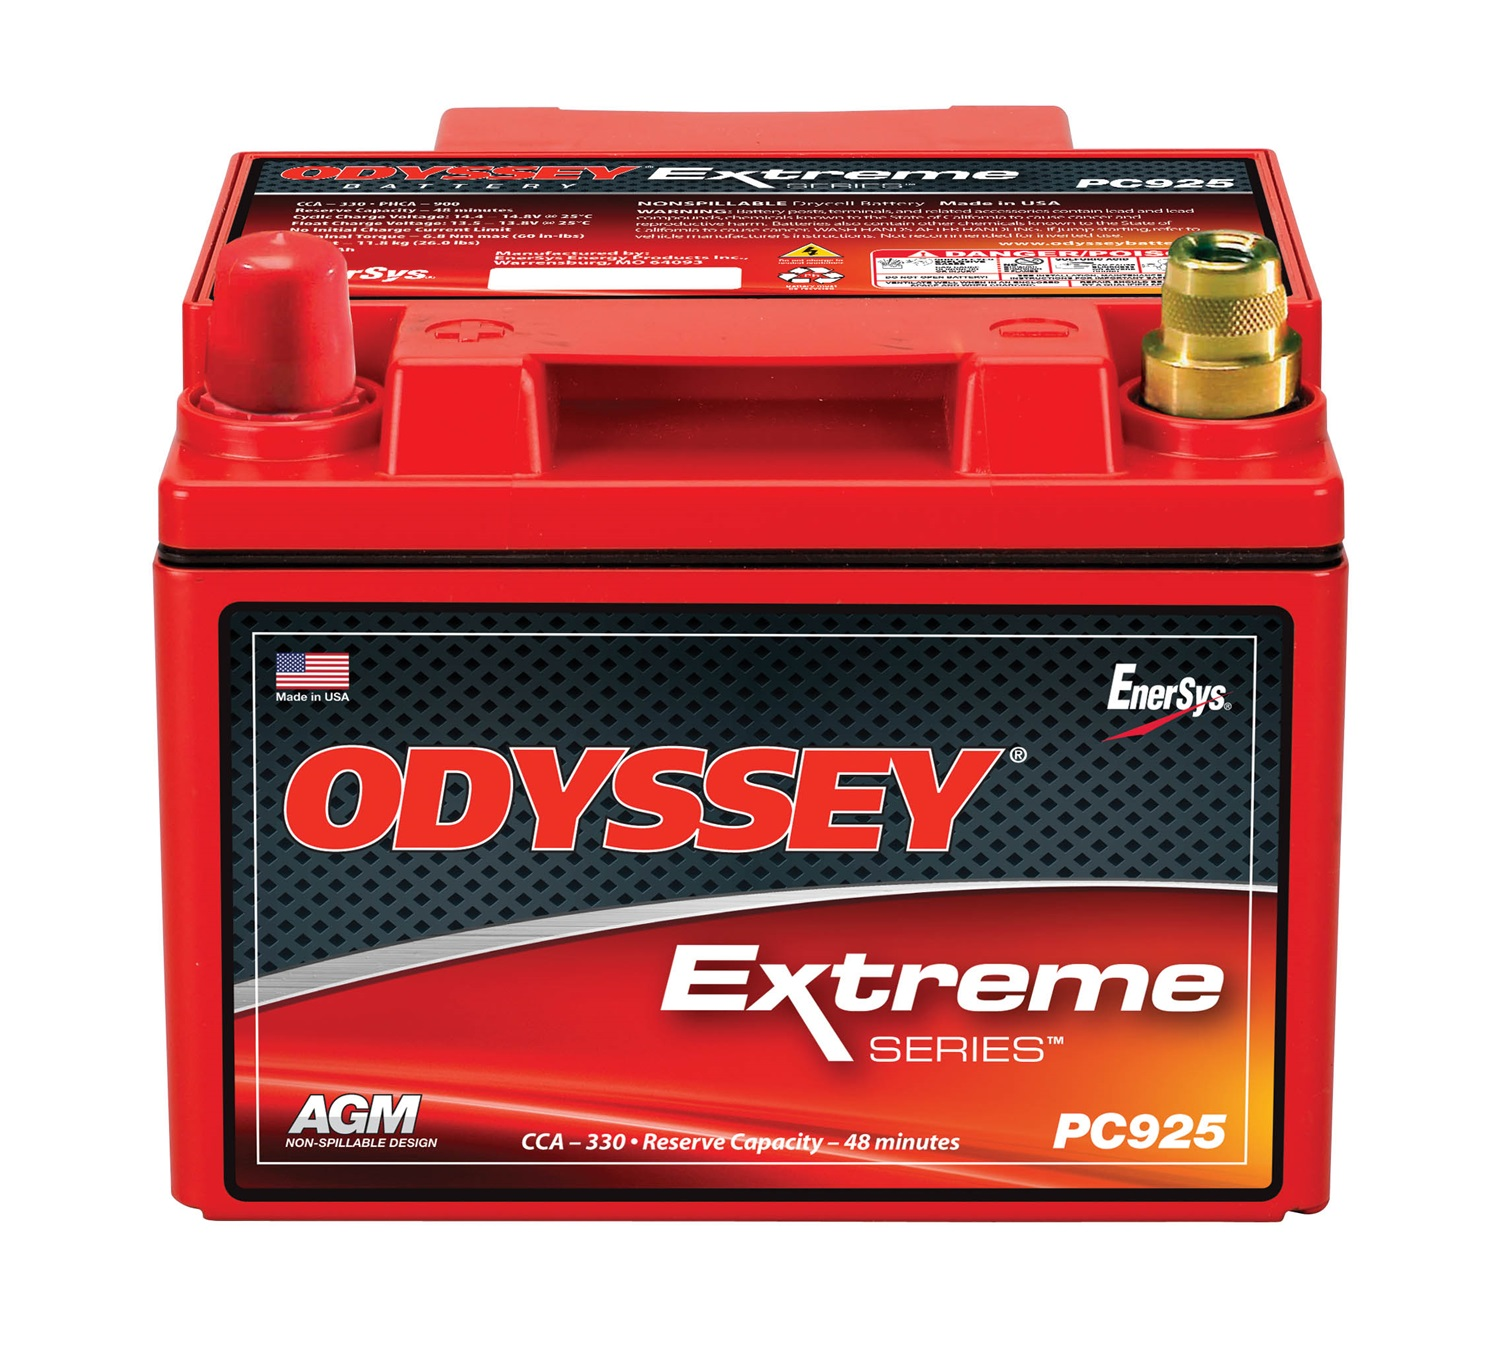 Odyssey Battery PC925LMJT Automotive Battery; 925 PHCA; 380 CCA; 500 MCA; RC Min. 52; L-6.64 in.; W-7.05 in.; H-5.04 in.; Left Positive SAE Brass Posts w/3/8 in. Threaded Receptacle ; w/Metal Jacket;